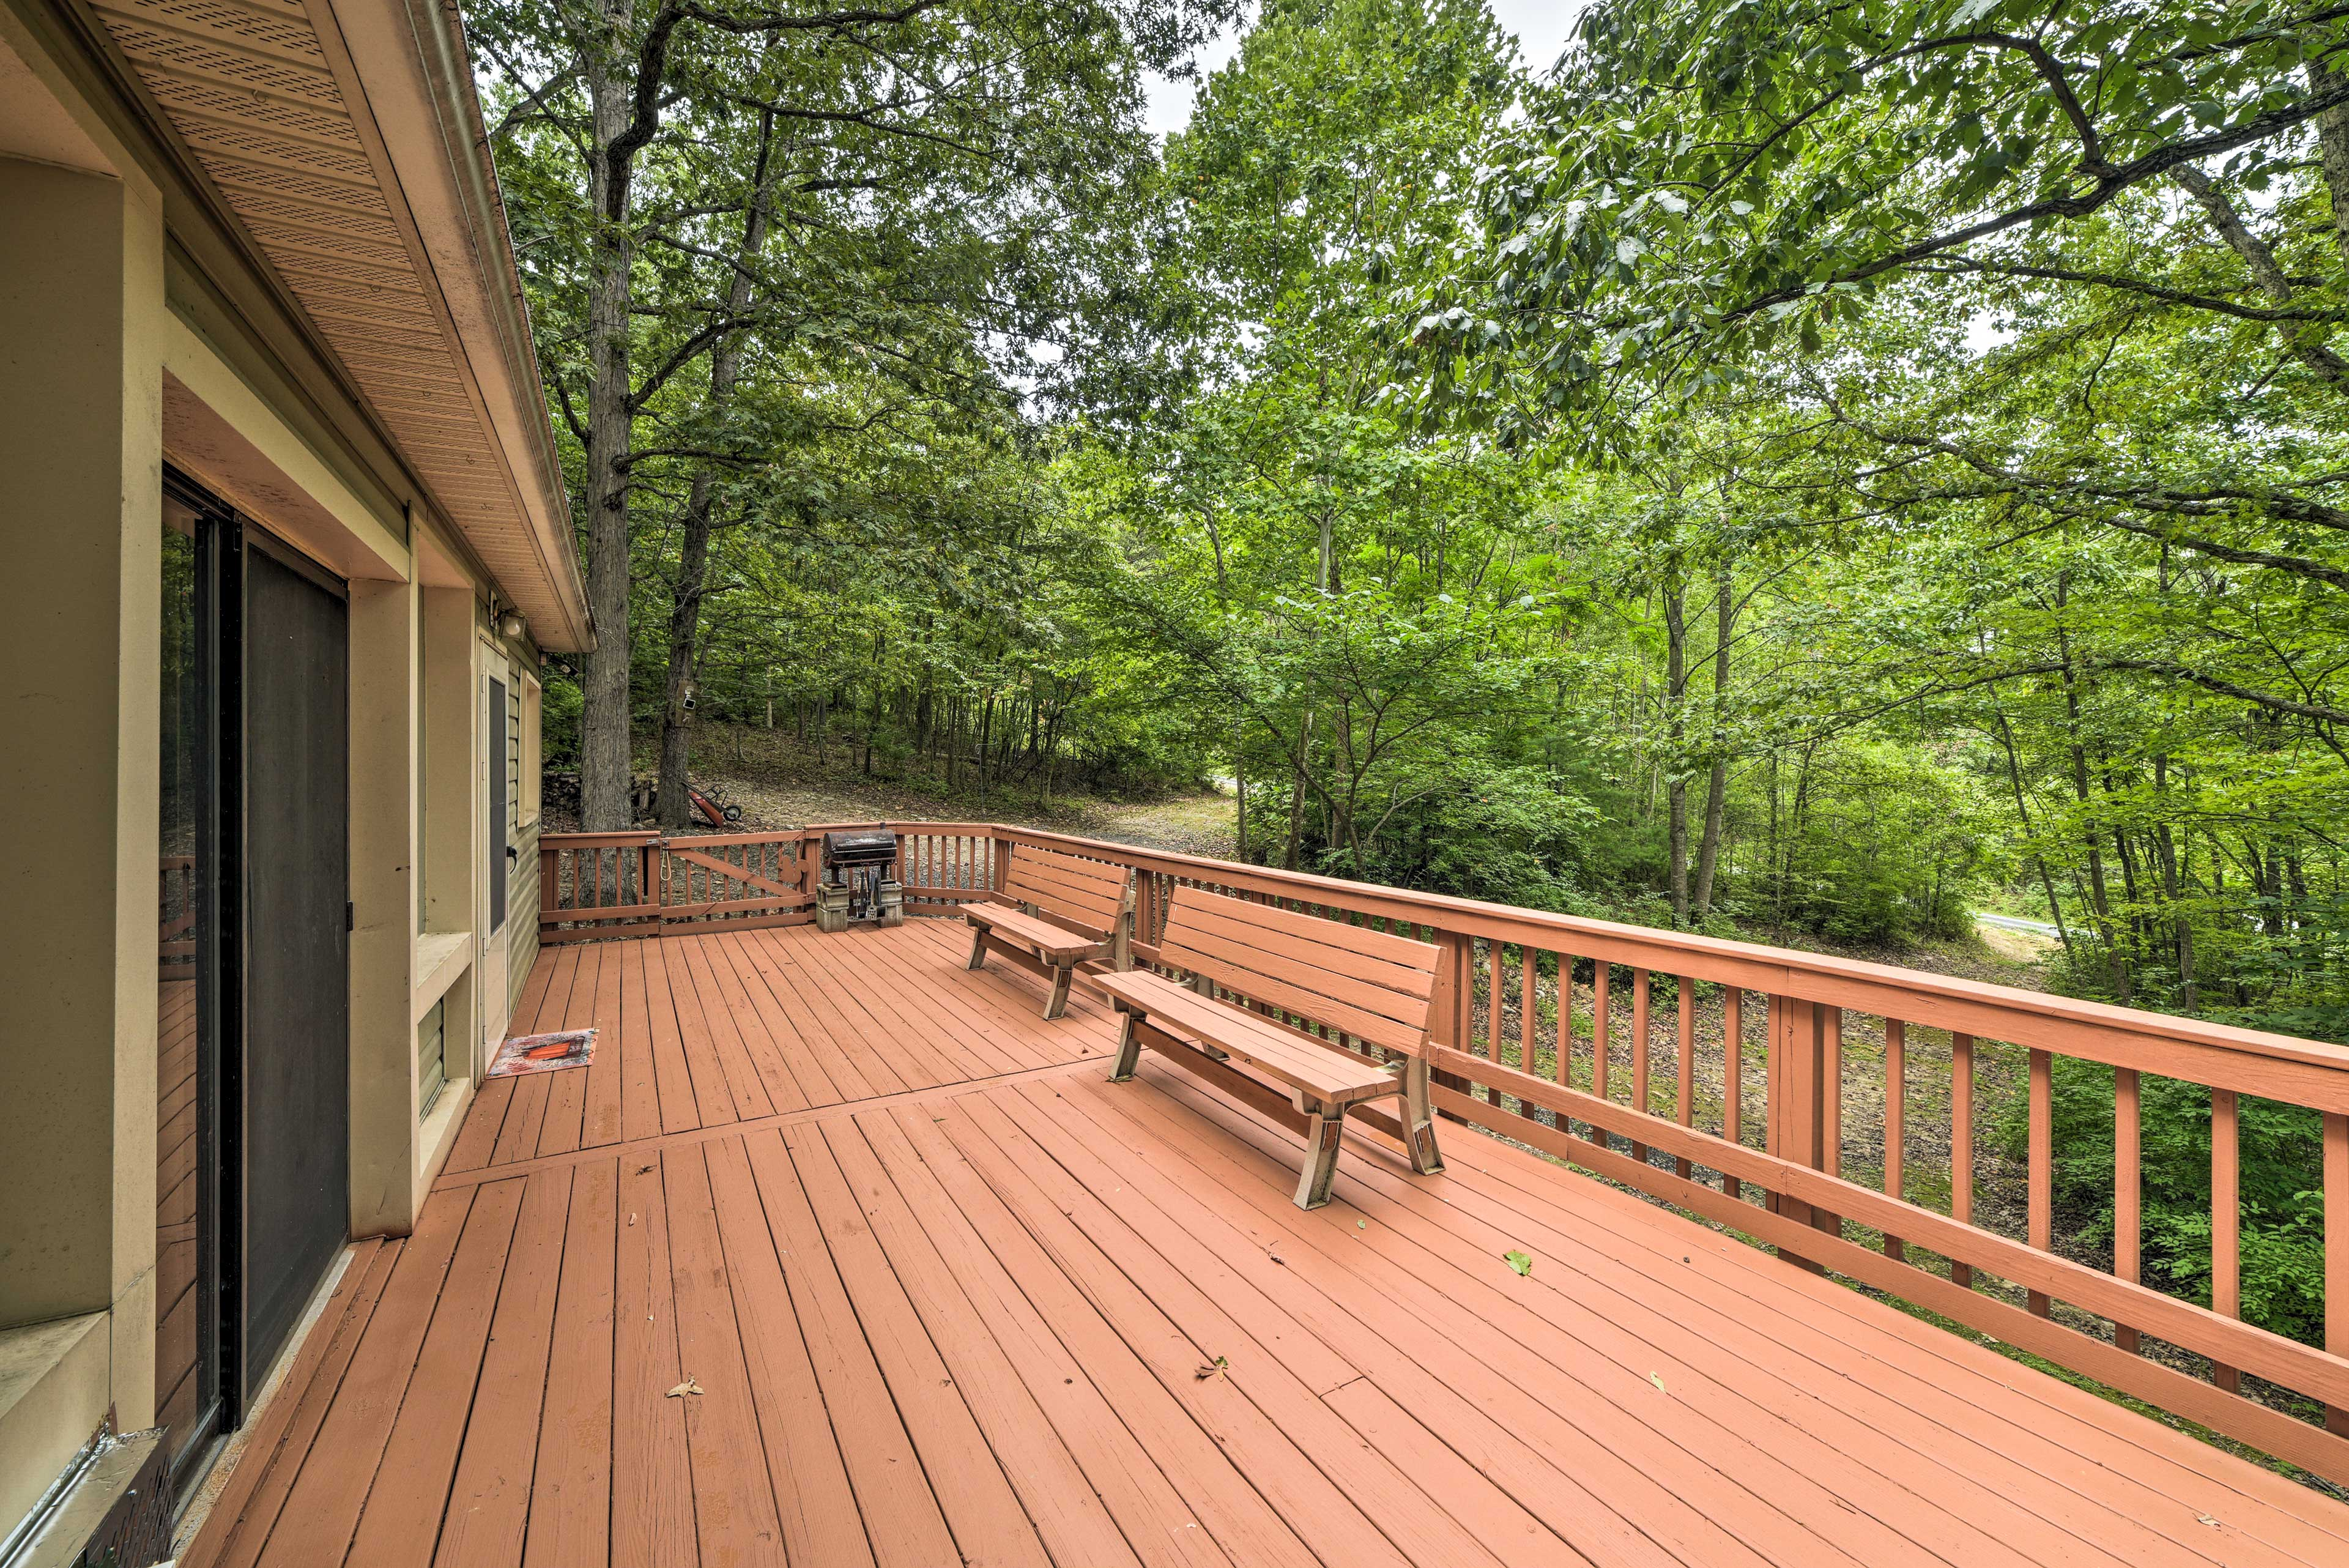 There will be plenty of room for you to relax on the spacious deck.